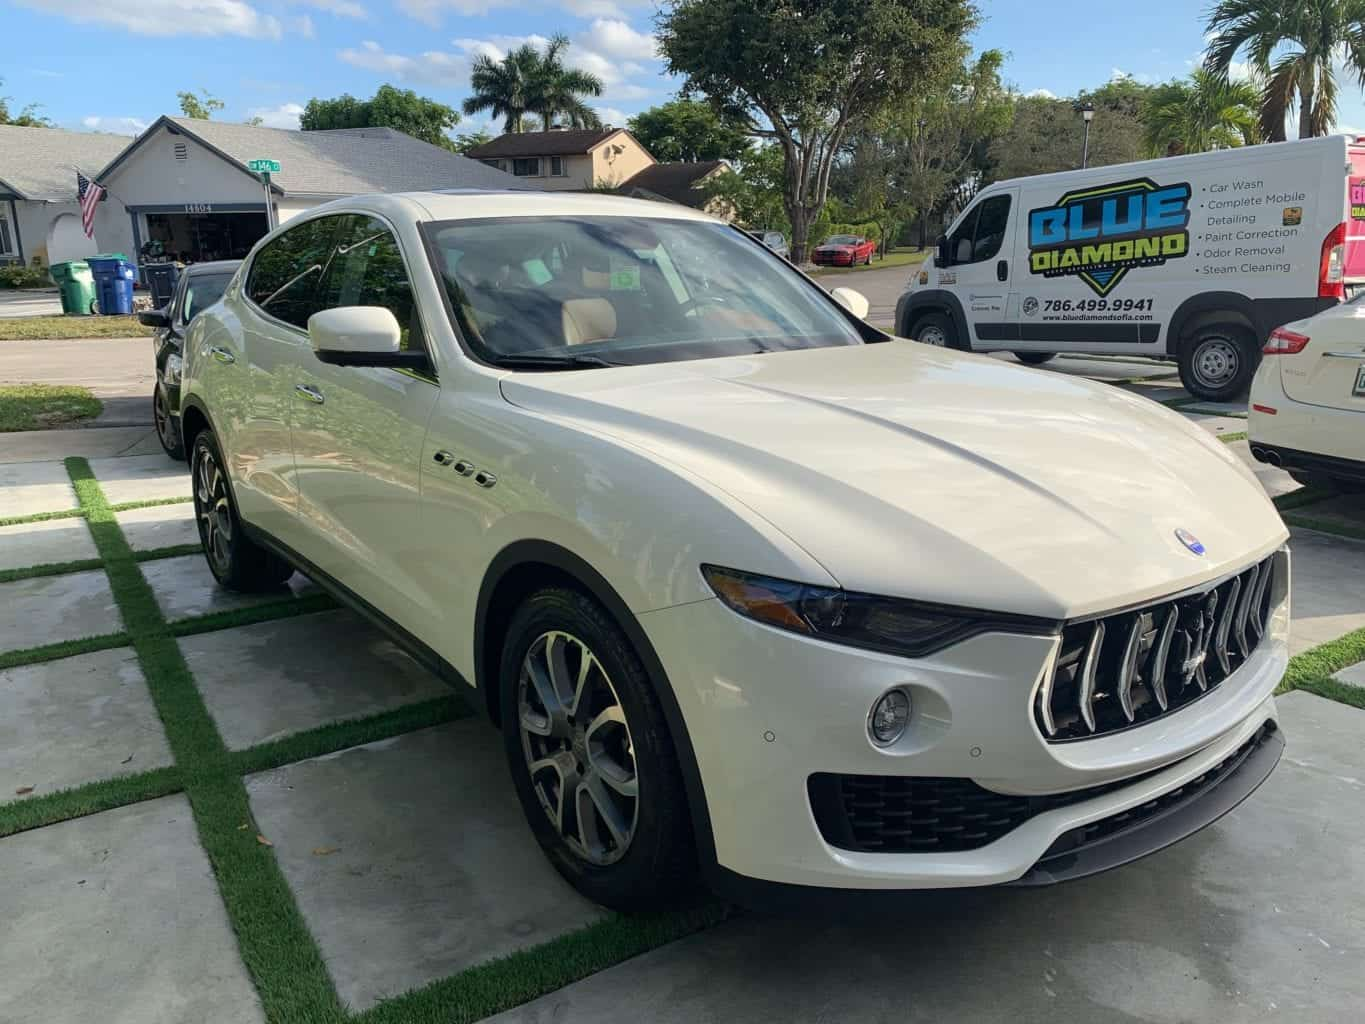 Blue Diamond Auto Detail Car Wash Key Biscayne